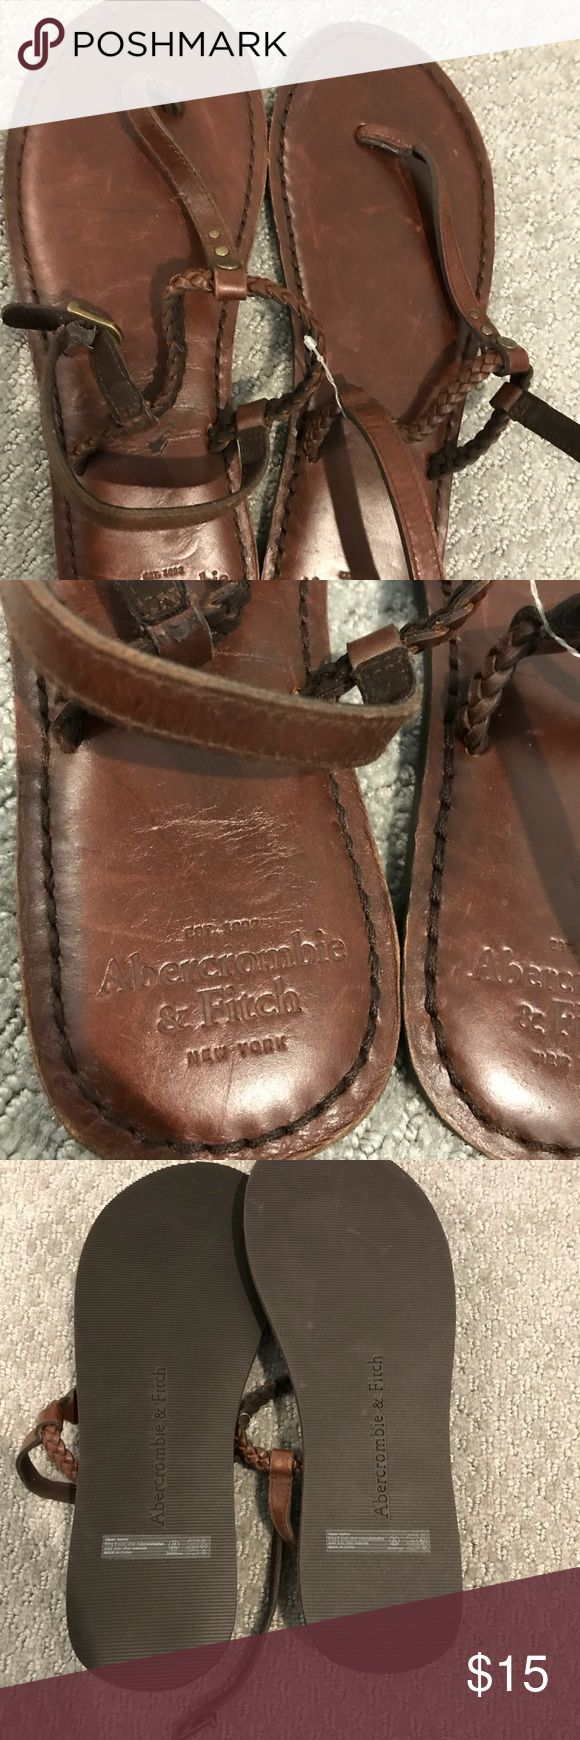 Abercrombie M8/9 brown leather sandals never worn Never been worn. The paper tag got ripped off but the clear tag is still on them. Never worn size 8/9 Abercrombie and fitch. Minor smudge from storing but won't see while being worn. Abercrombie & Fitch Shoes Sandals